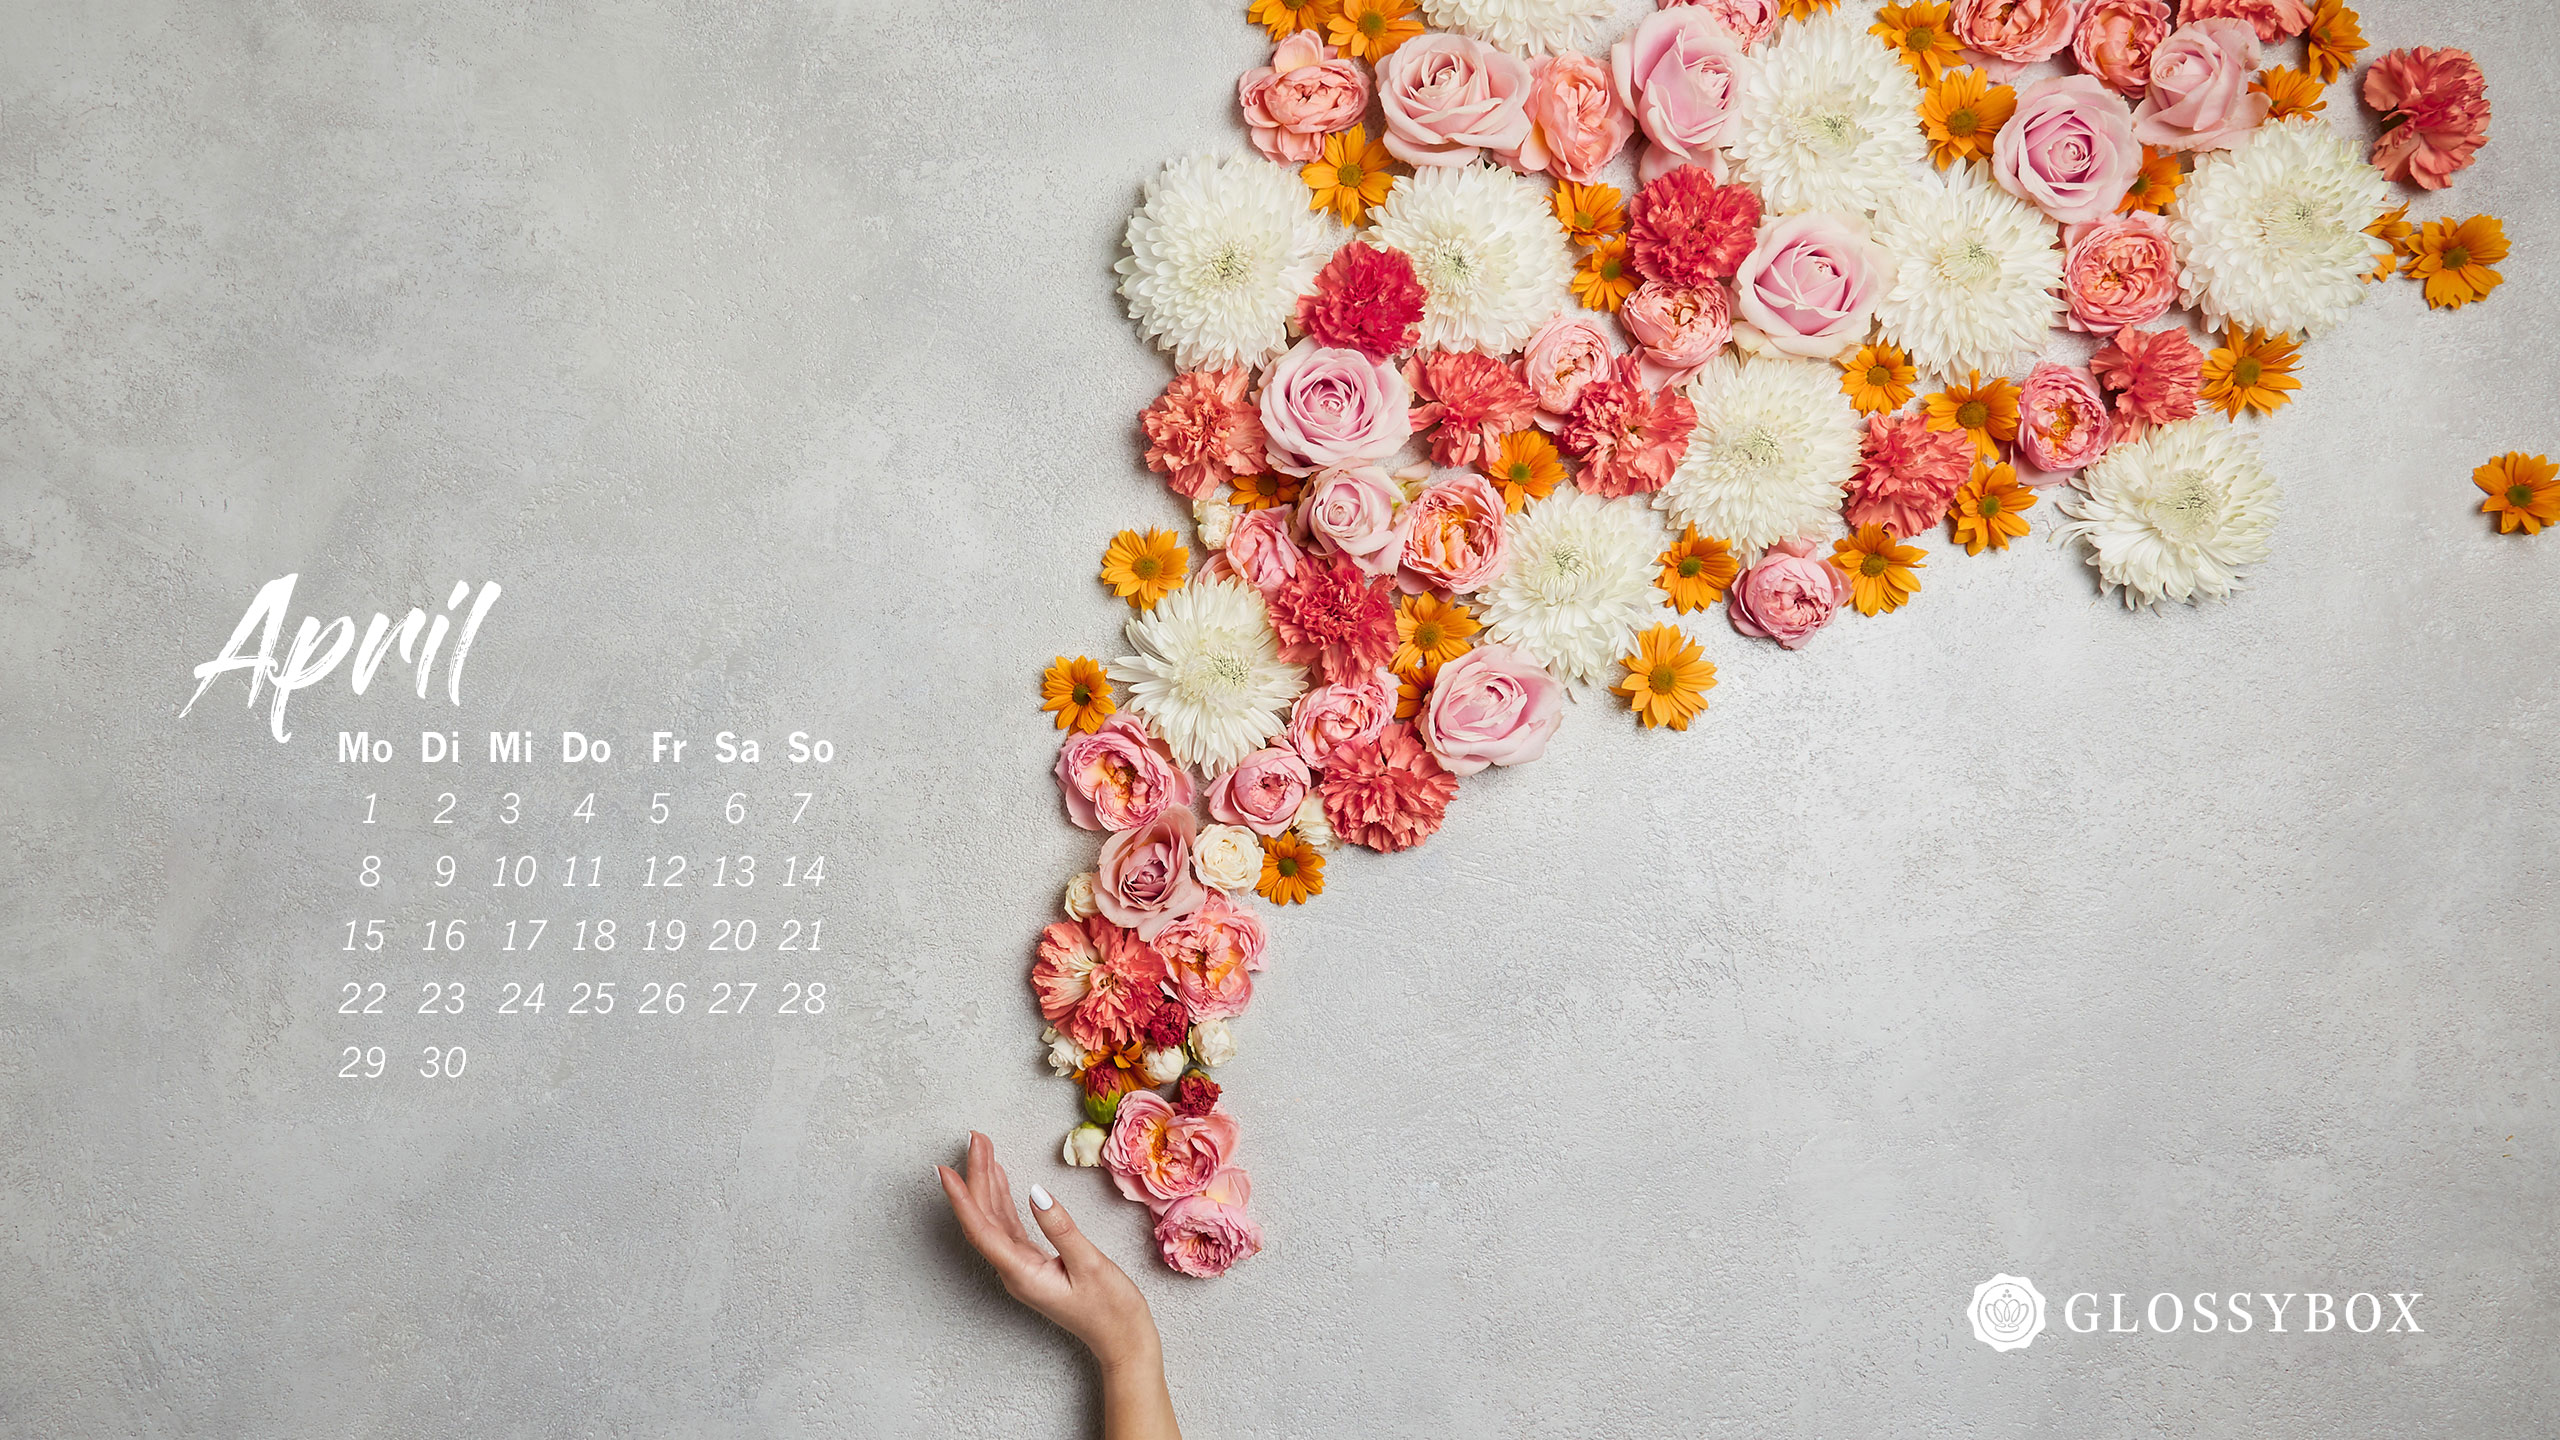 Wallpaper April Kalender